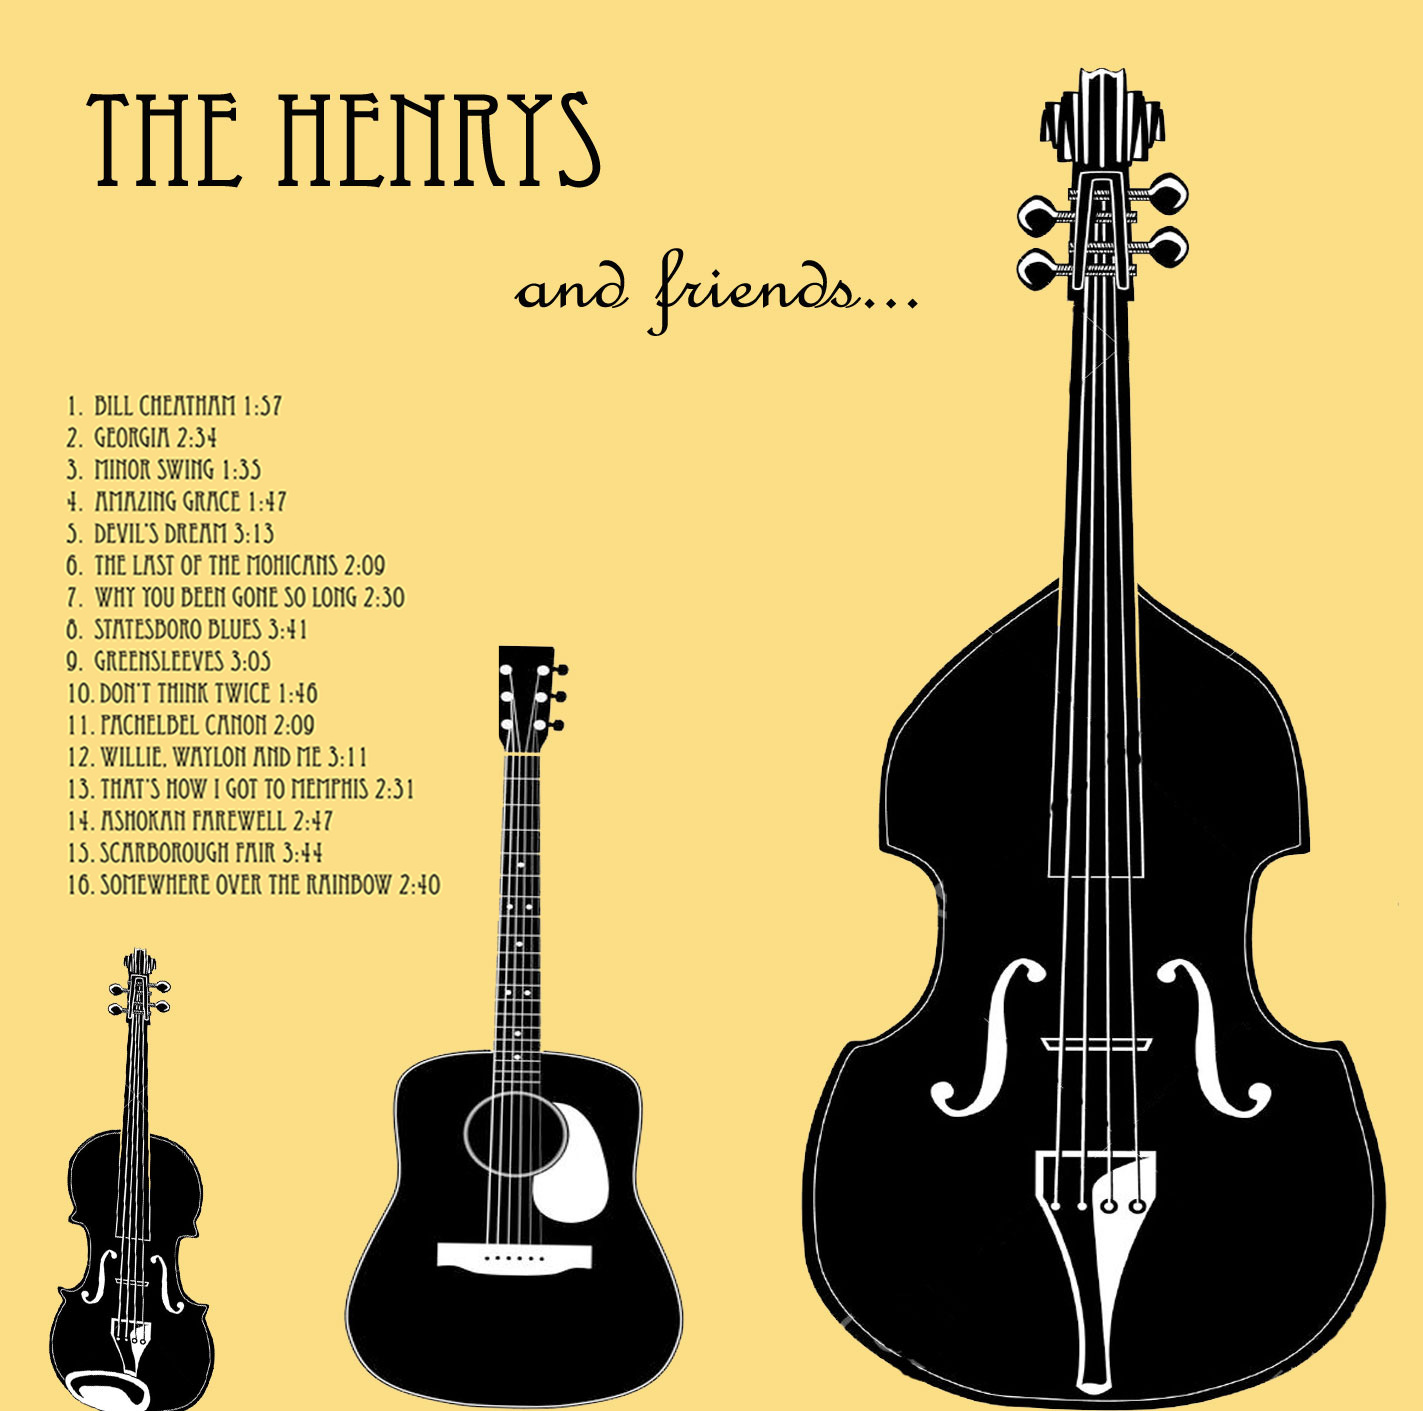 The Henrys and Friends..... - Henry Wynn, Jr - Guitar; Henry Wynn III - Violin; Deveran Roof - Bass; Doug Johnson - Vocals and Guitar; Cheryl Wynn - Vocals and Guitar; Jimmy Seldin, Resophonic guitar; Jared Chaney, Guitar; Frank Vaughan - Harmonica.